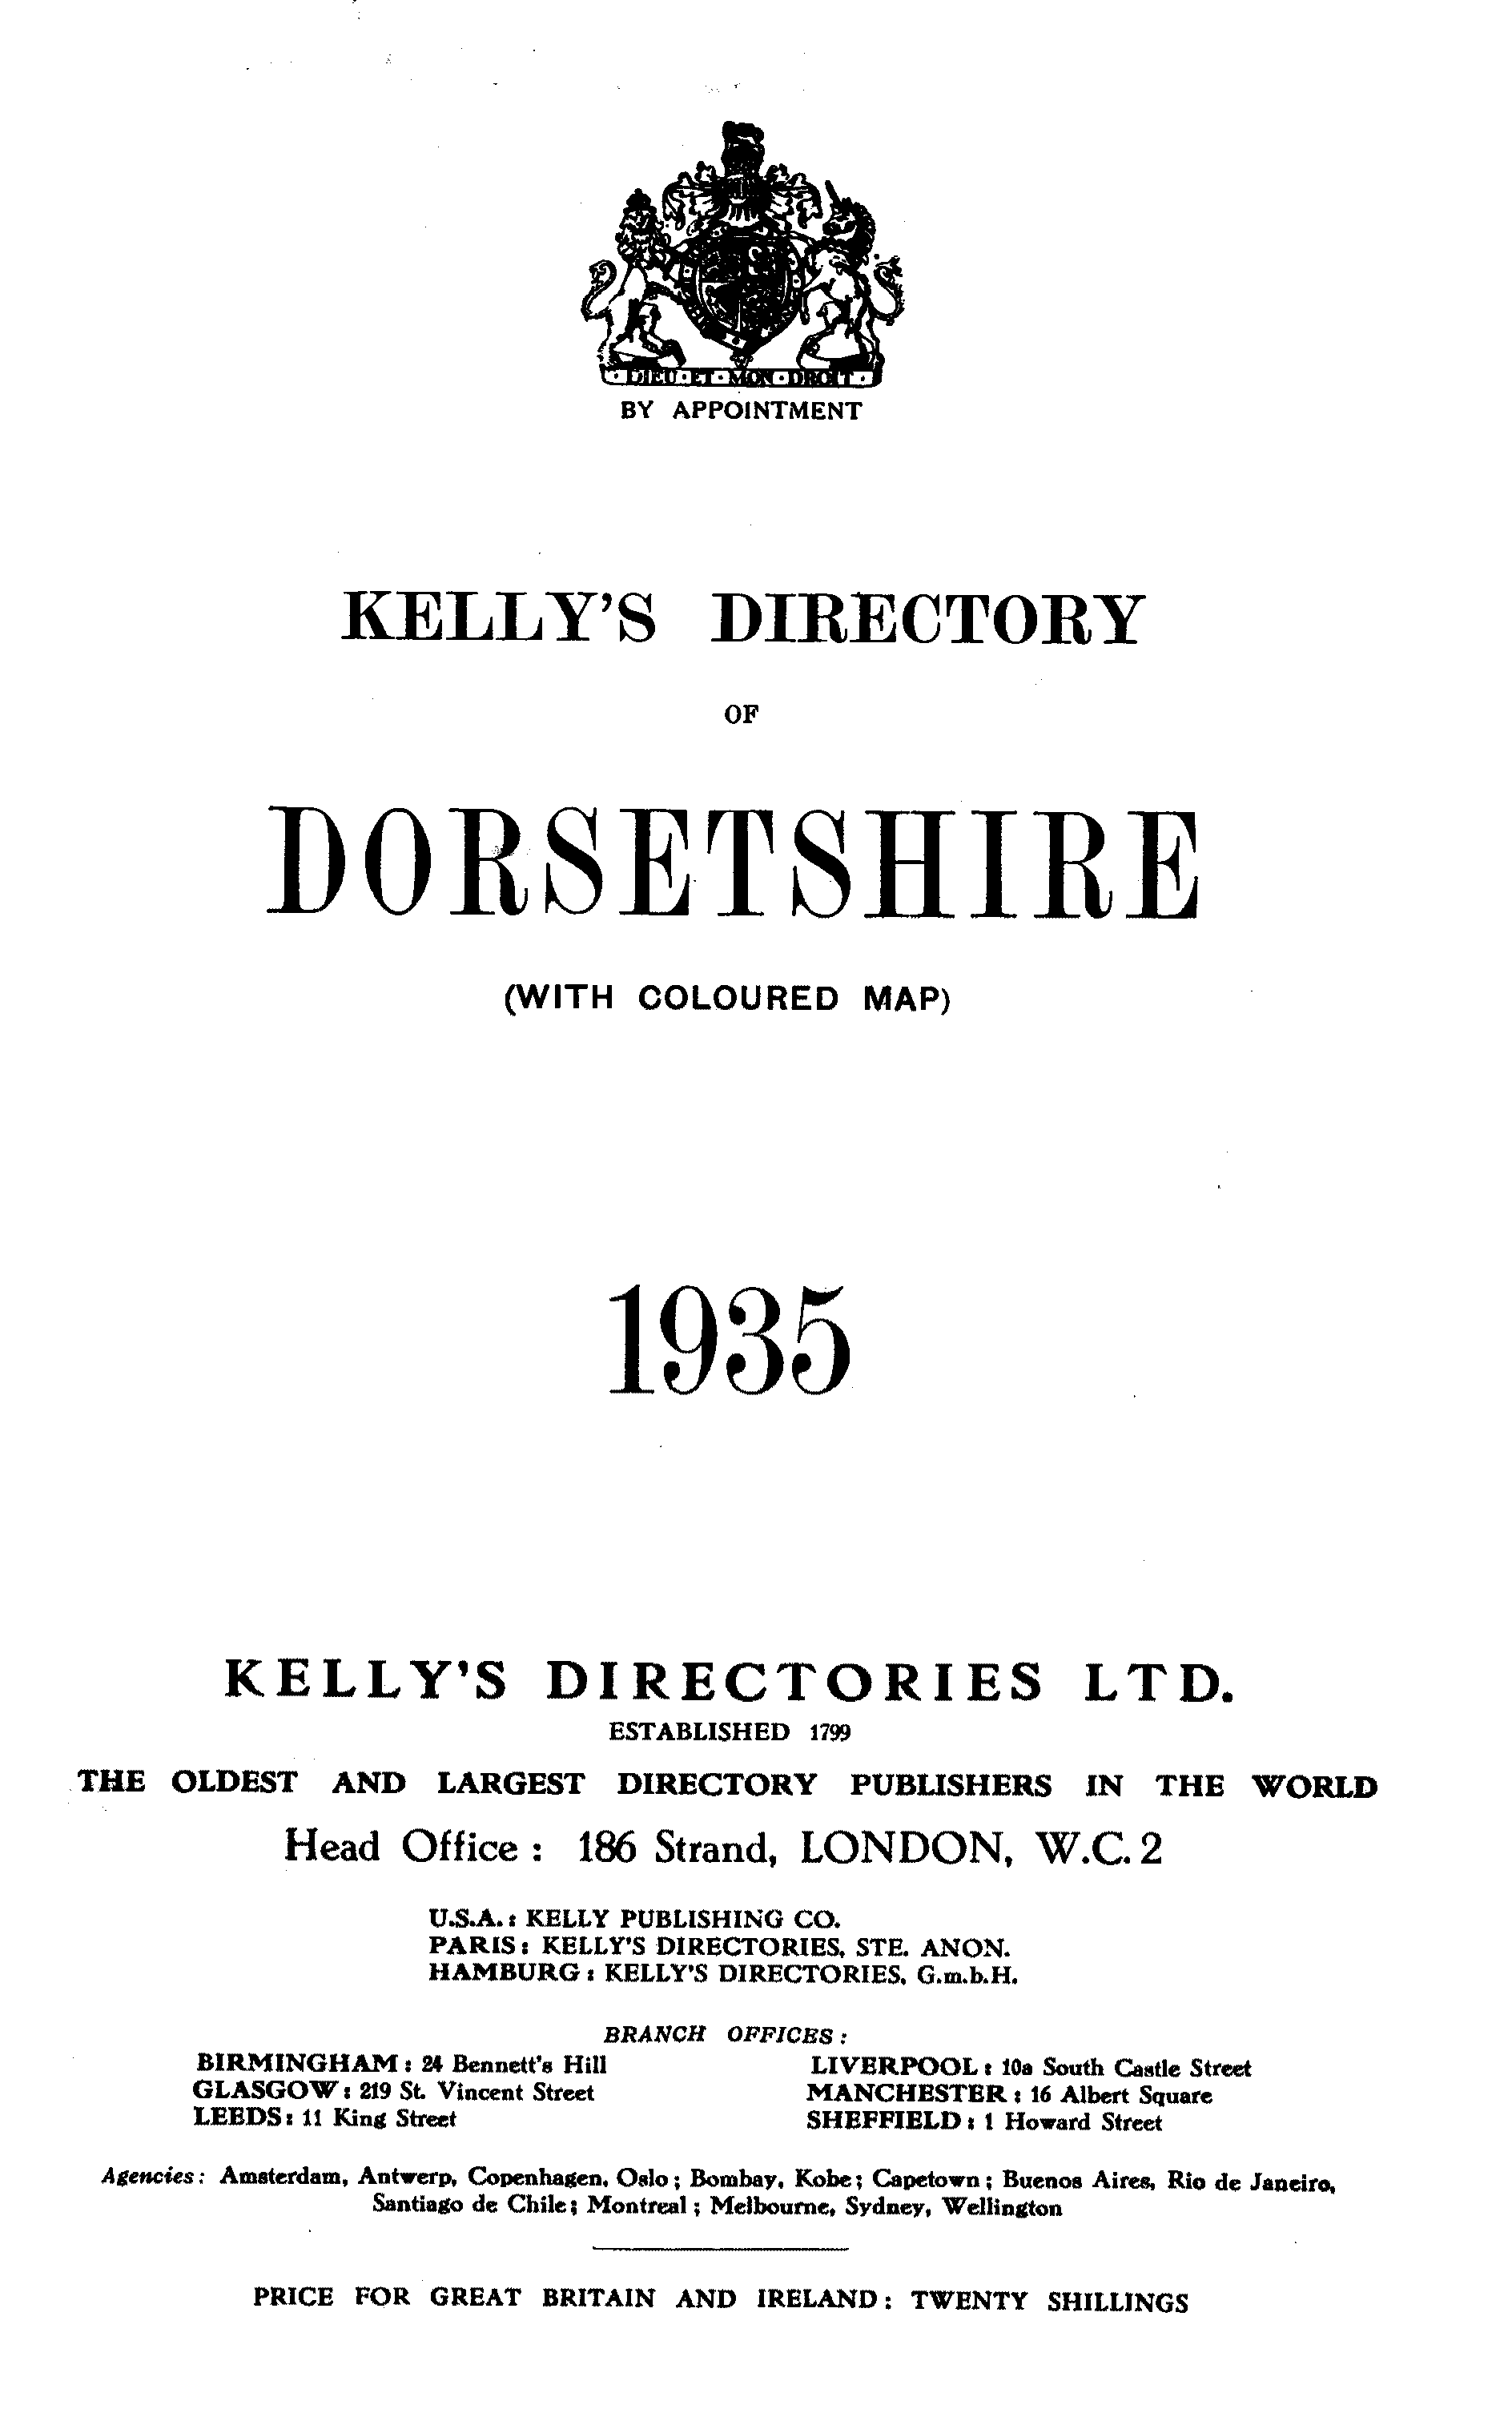 Kelly's Directory of Dorsetshire, 1935 page i - click to open larger version in a new window